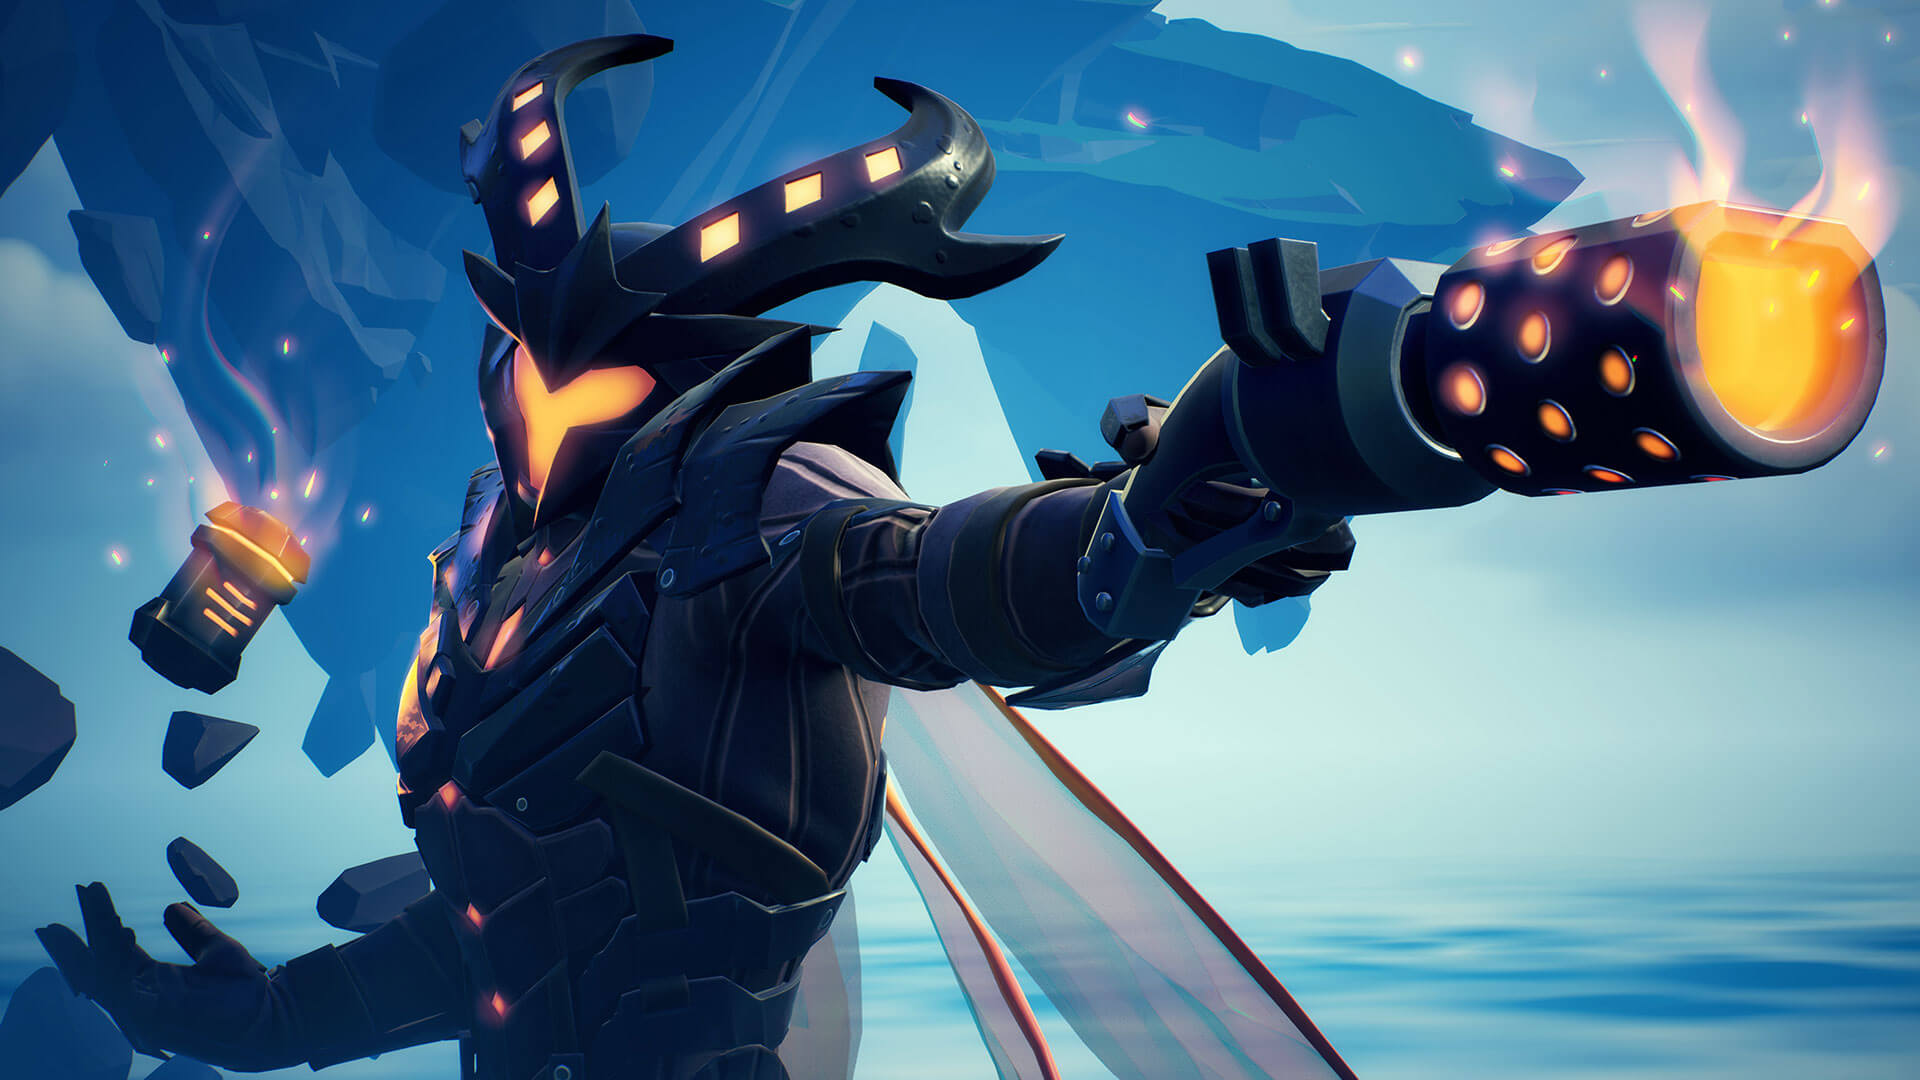 dauntless-screenshot-repeaters_hero_pose.jpg